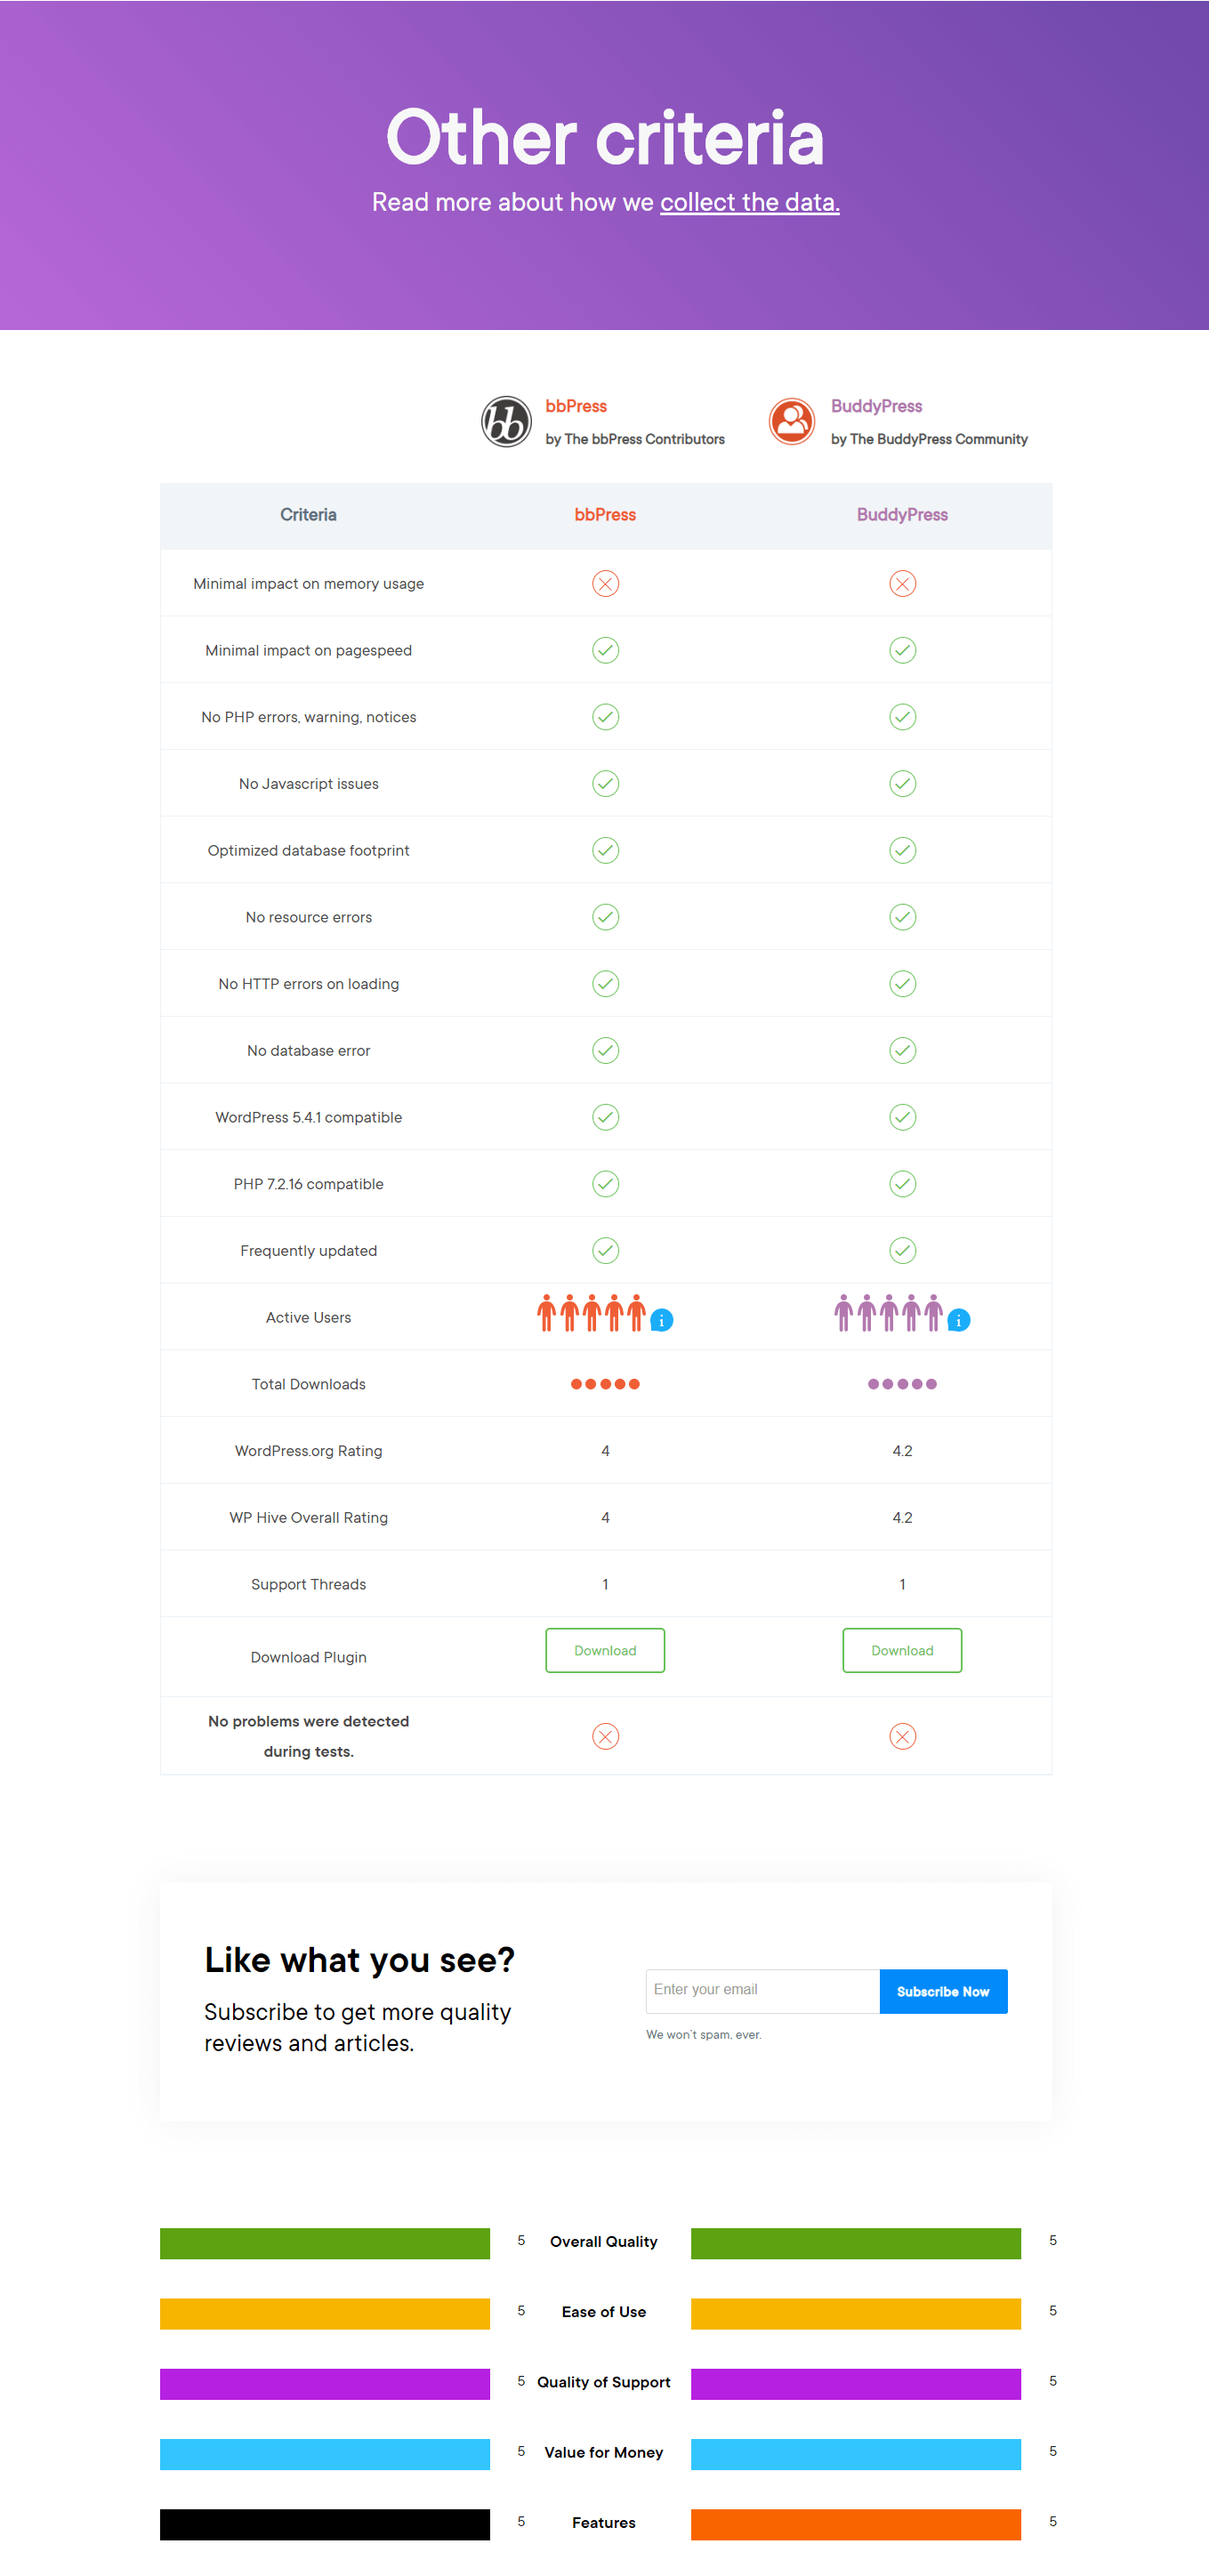 Rating & Other Criteria of bbPress vs BuddyPress